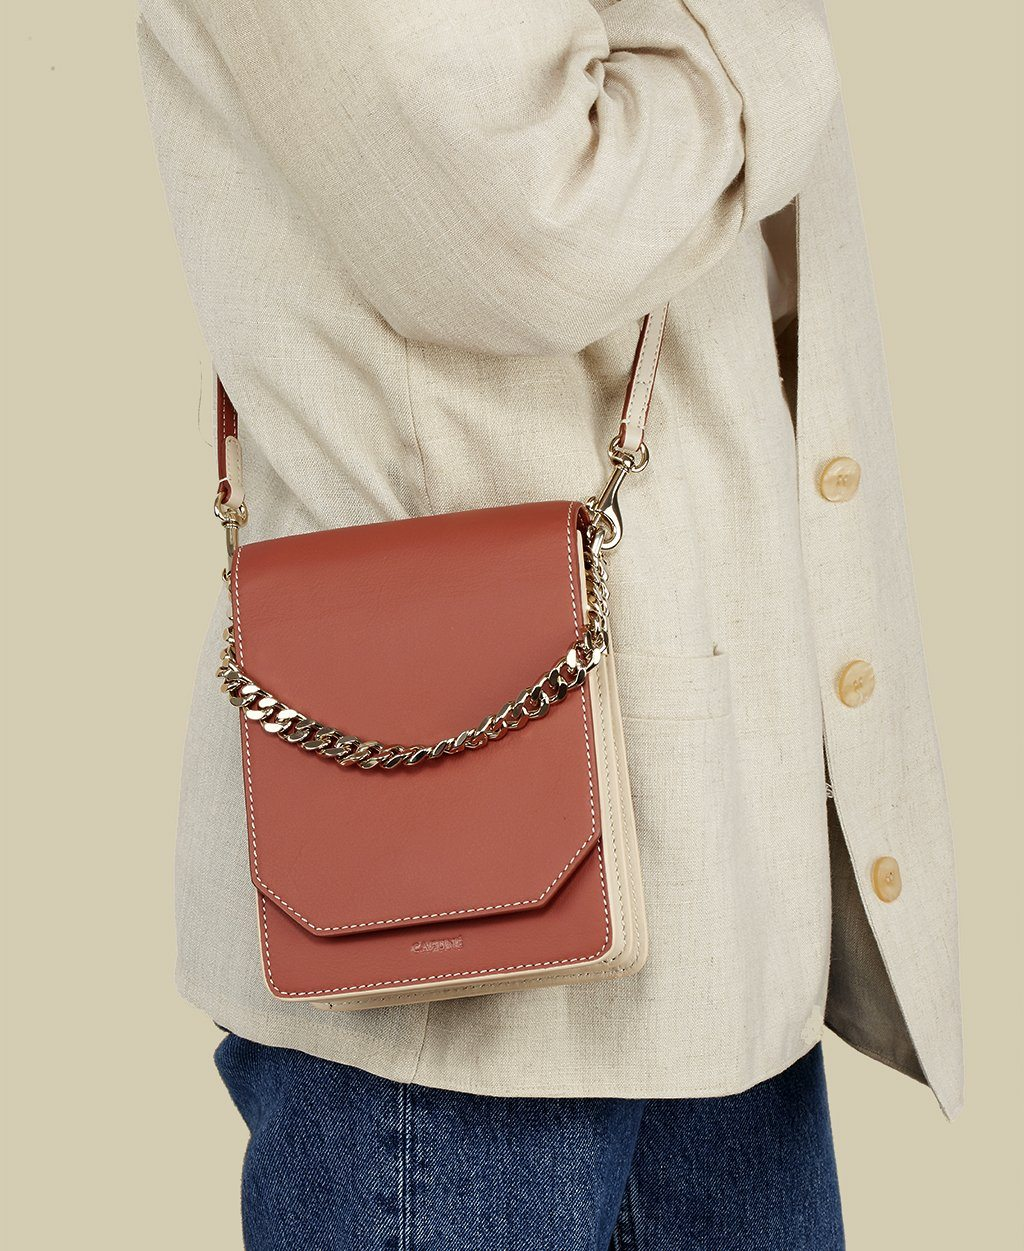 Bellows Crossbody - Brick